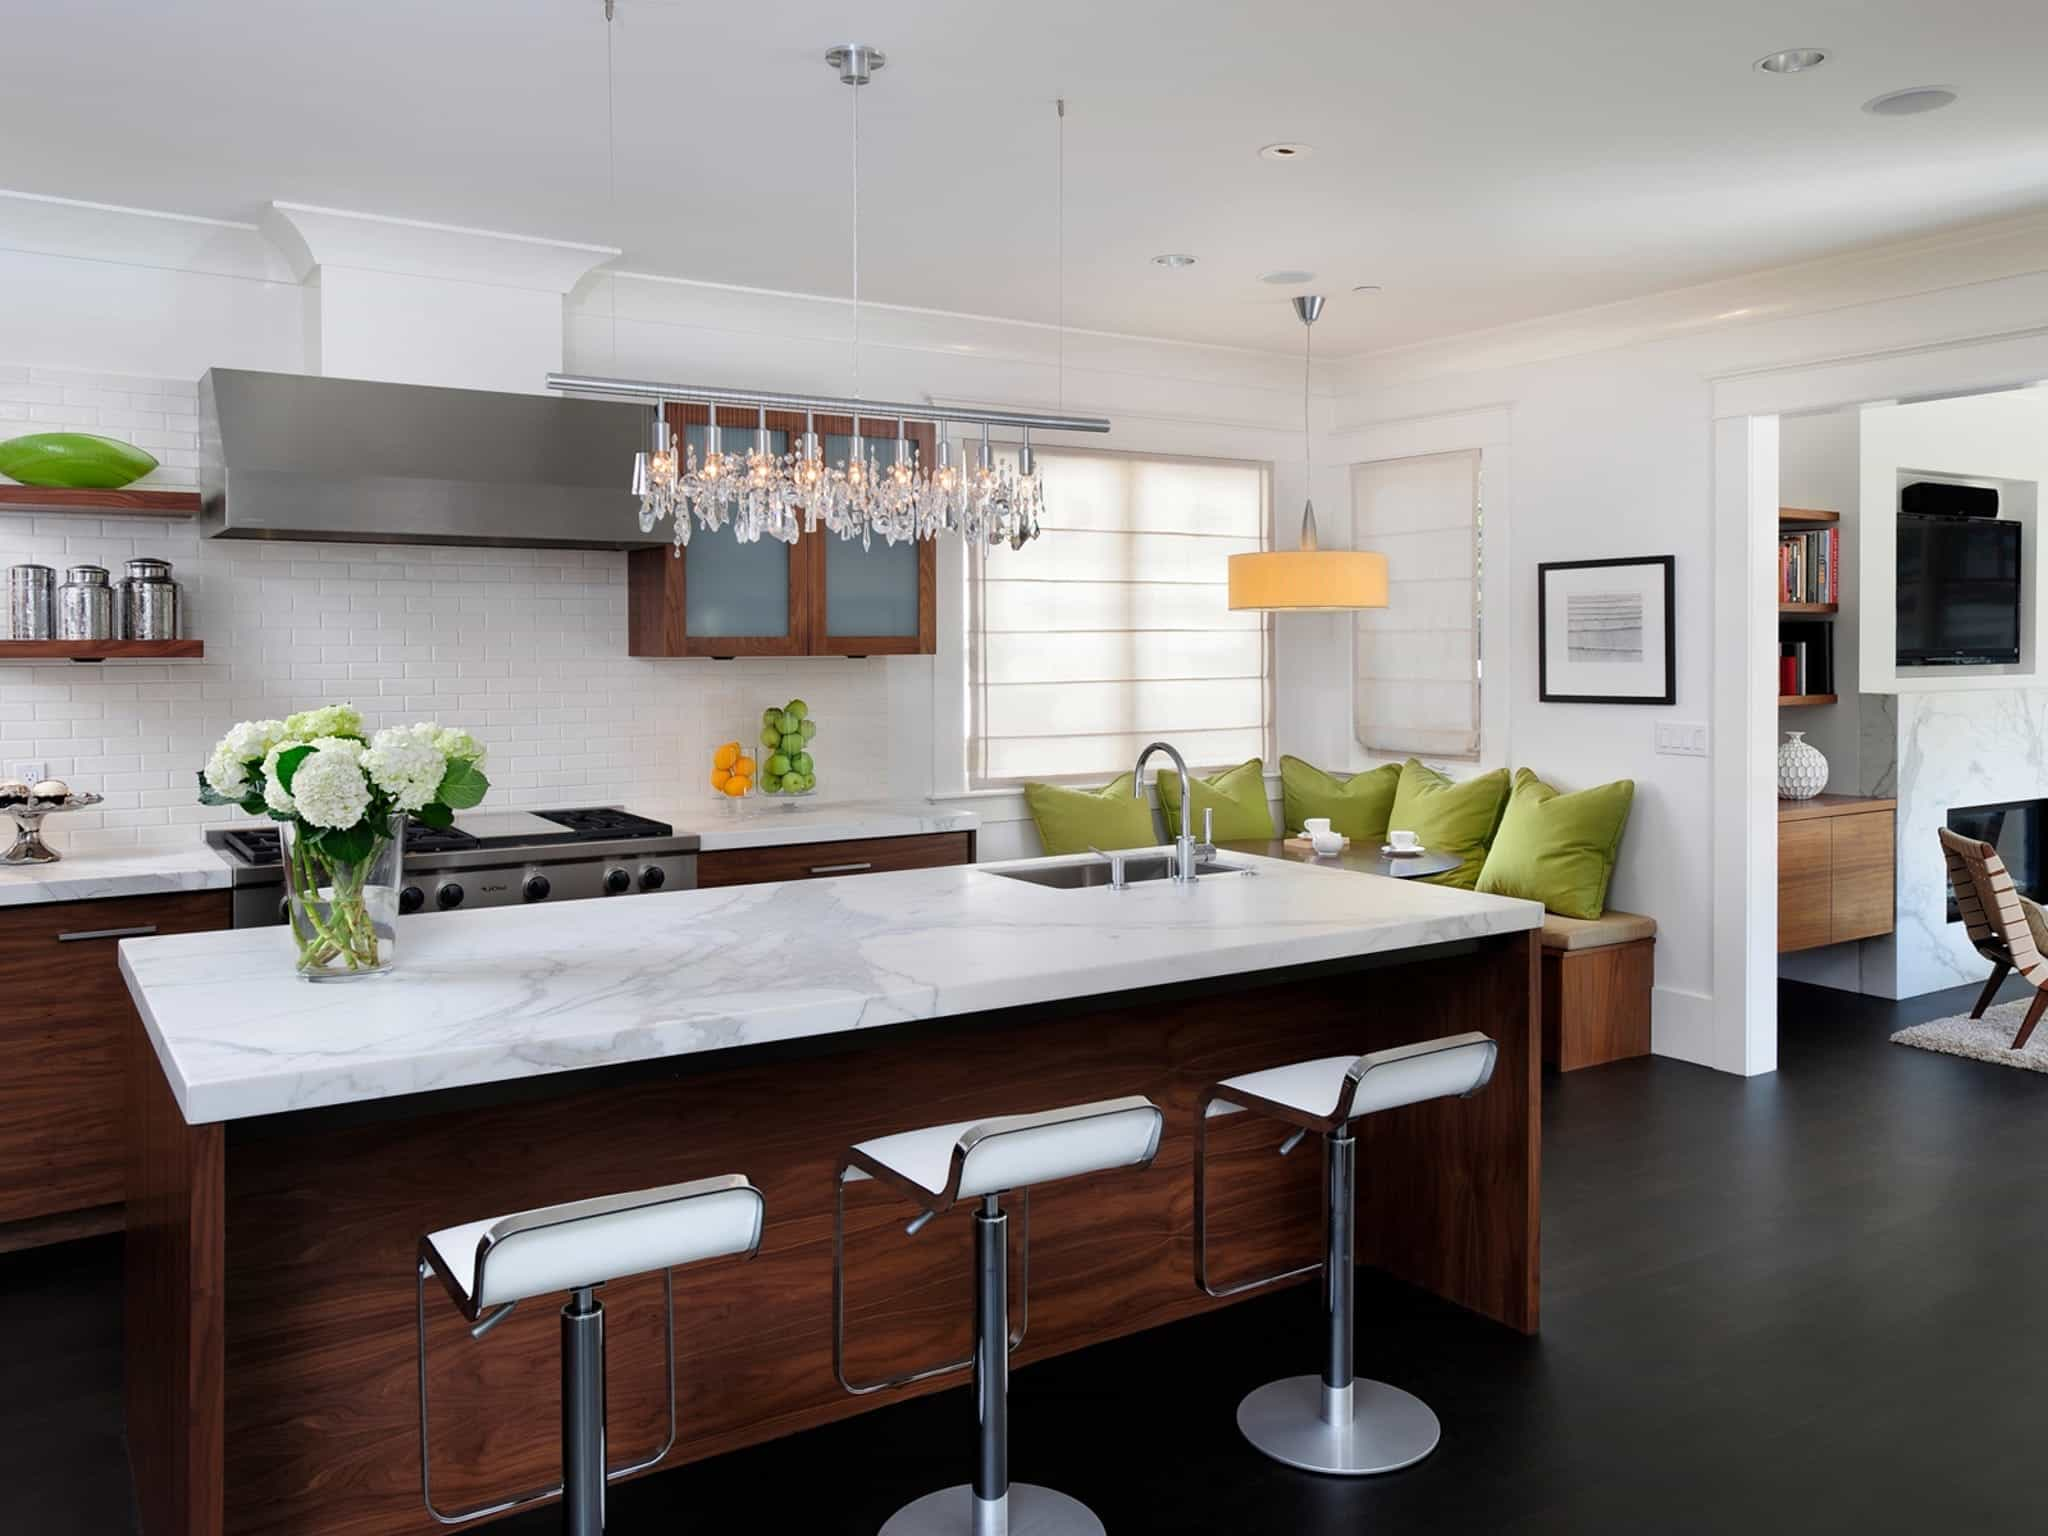 Transitional White Kitchen With Dark Wood Flooring (Image 10 of 12)